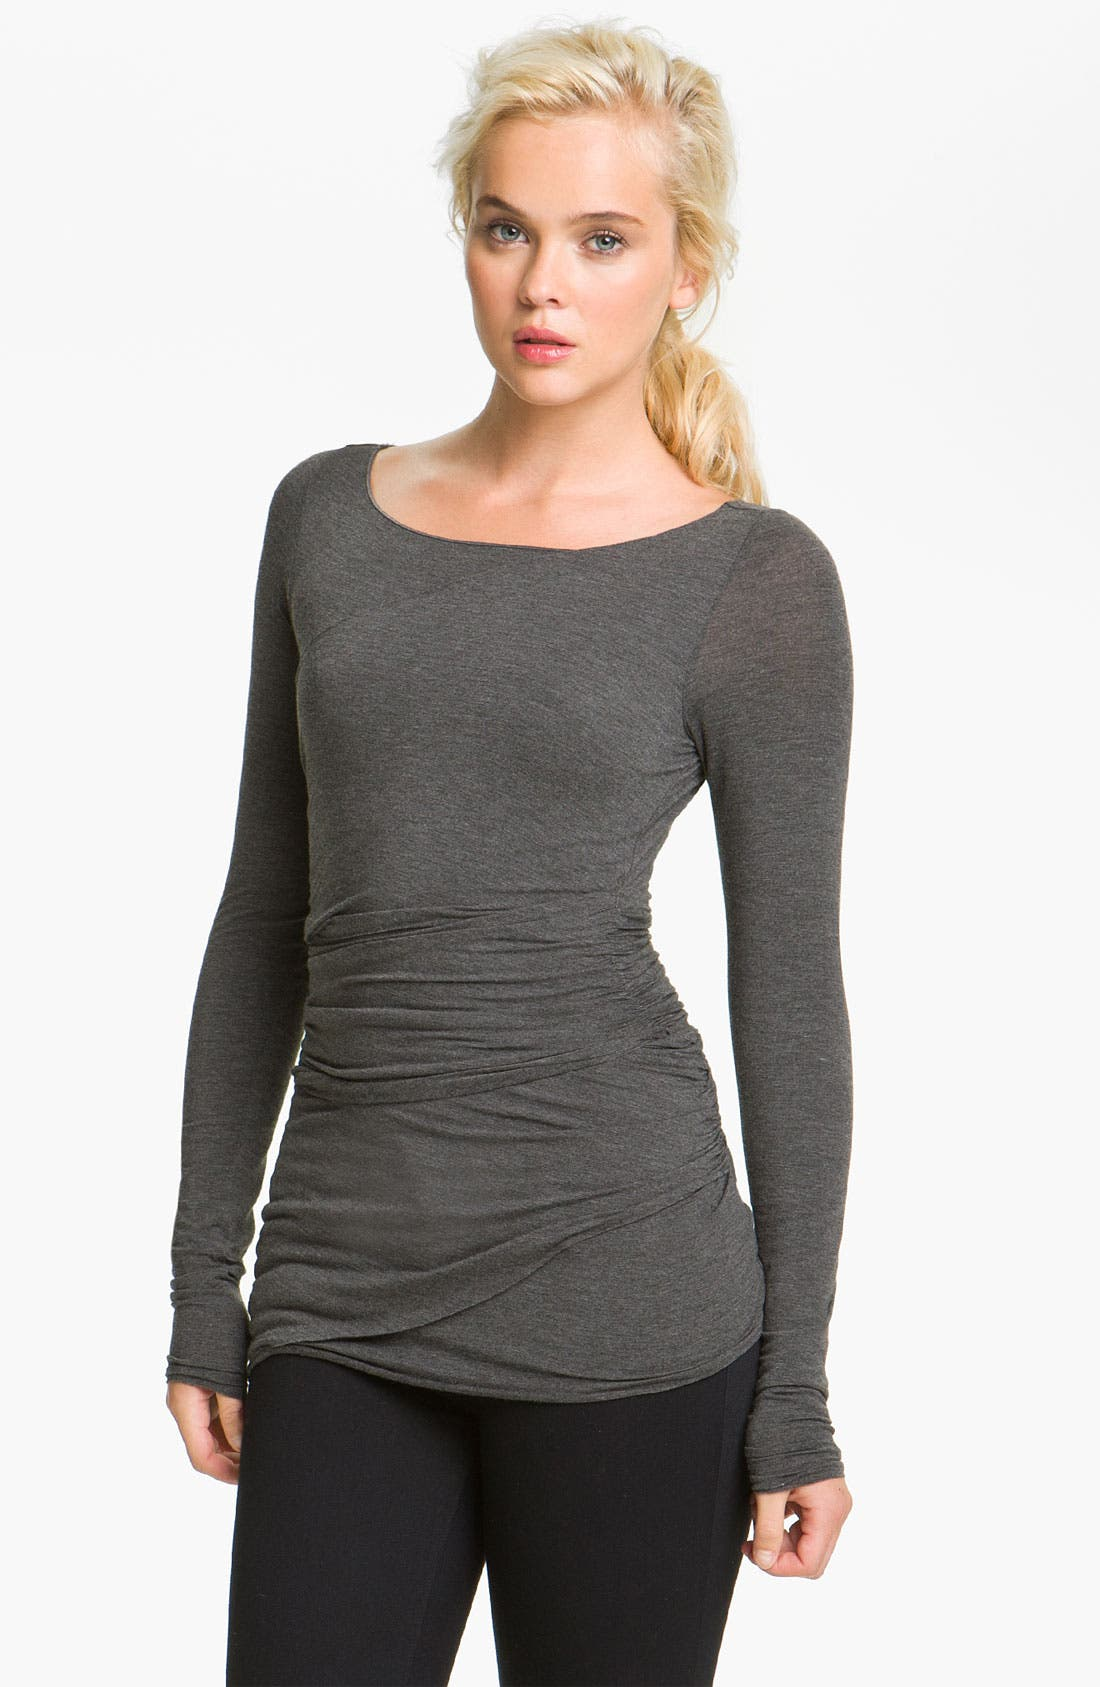 Alternate Image 1 Selected - Bailey 44 'Initiation' Ruched Top